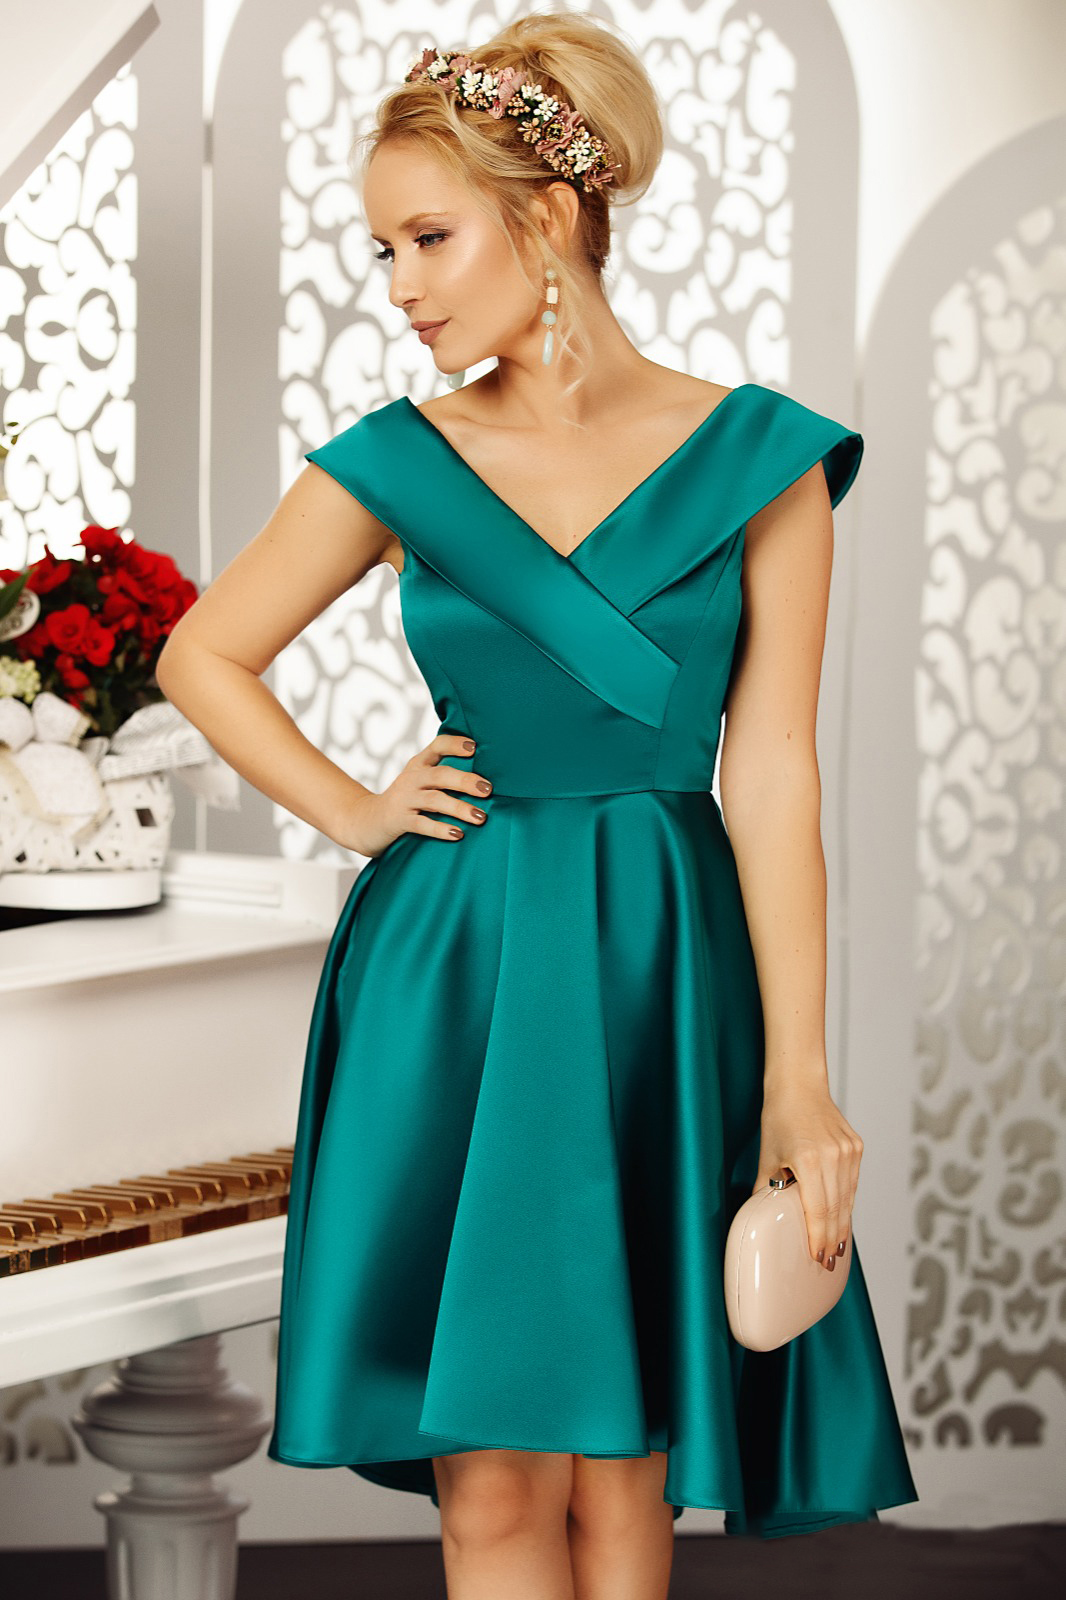 Fofy darkgreen occasional asymmetrical cloche dress off shoulder from satin fabric texture